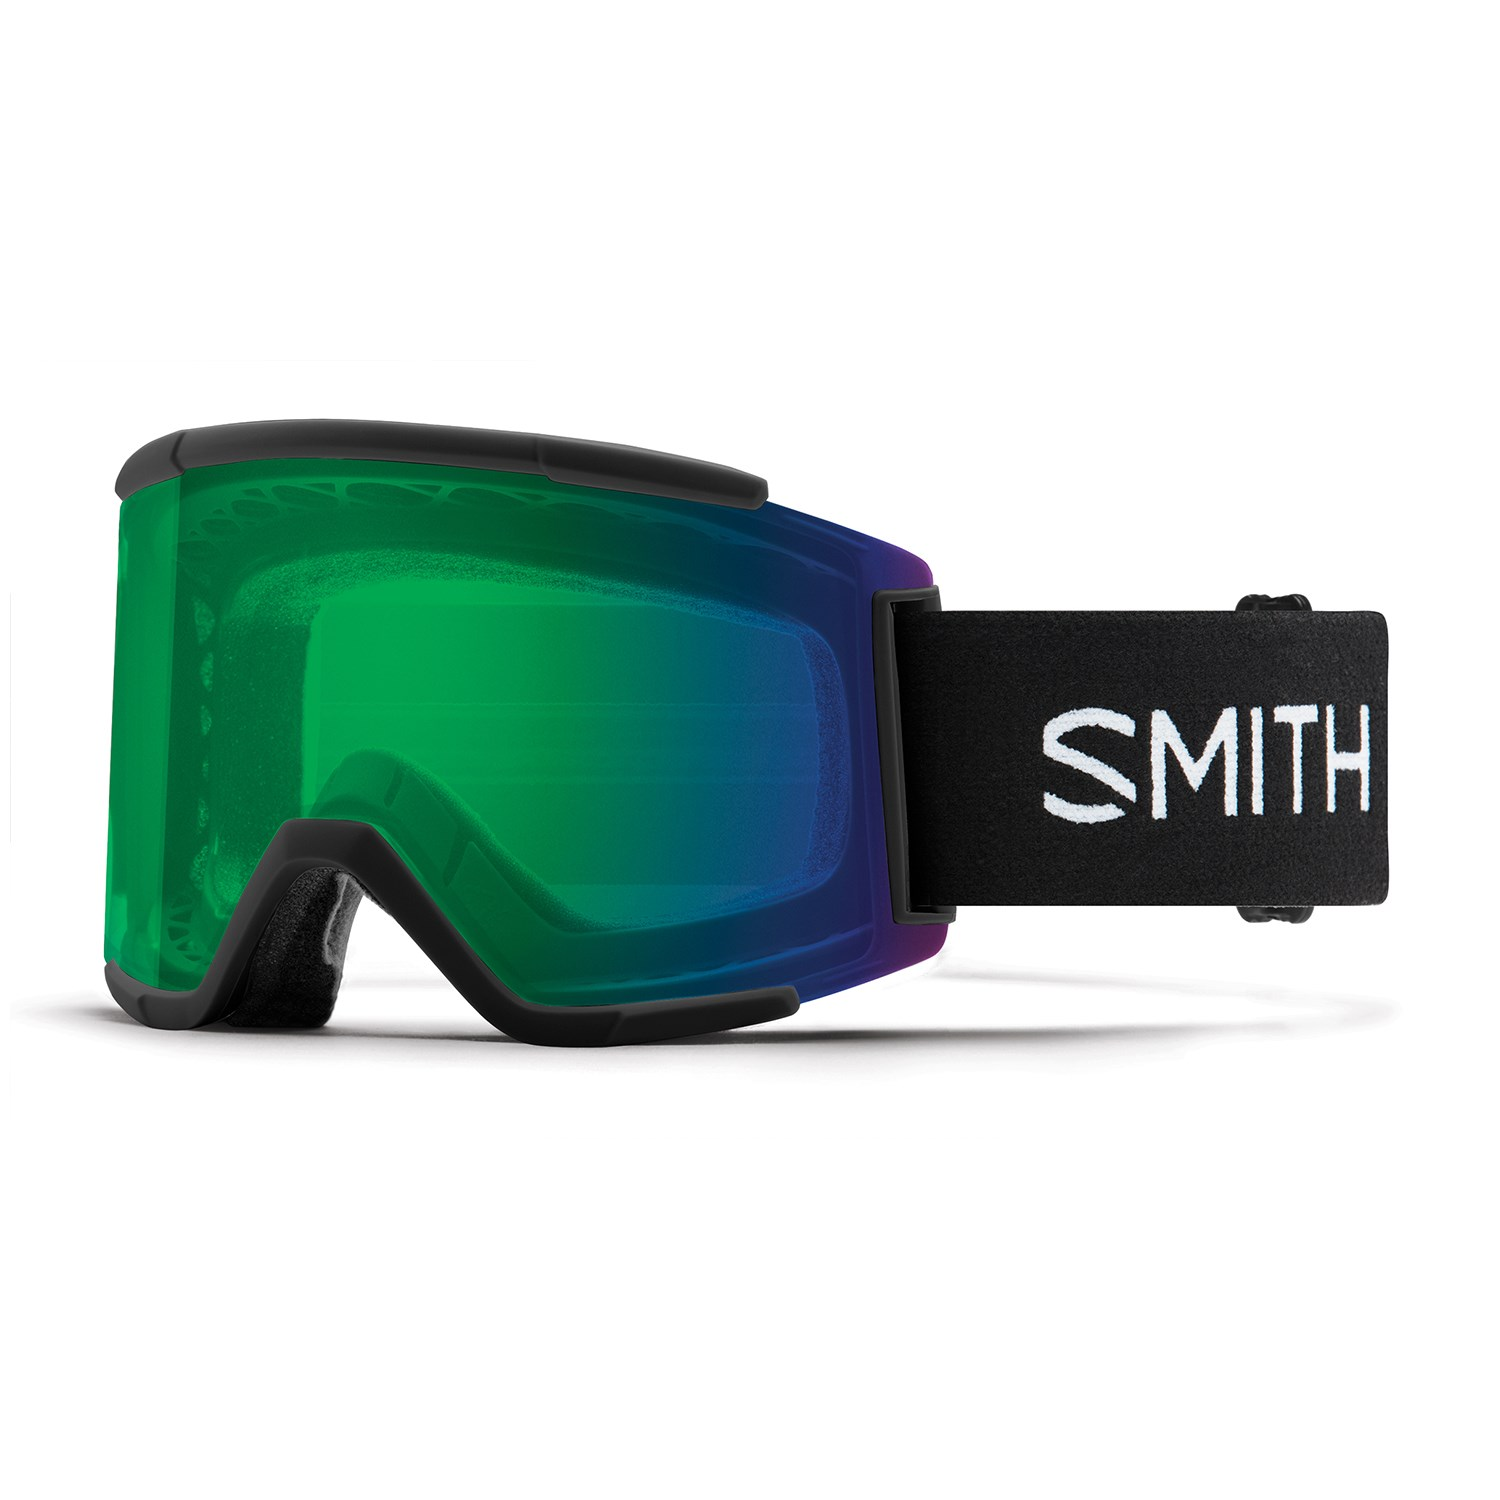 smith squad  Smith Squad XL Goggles | evo